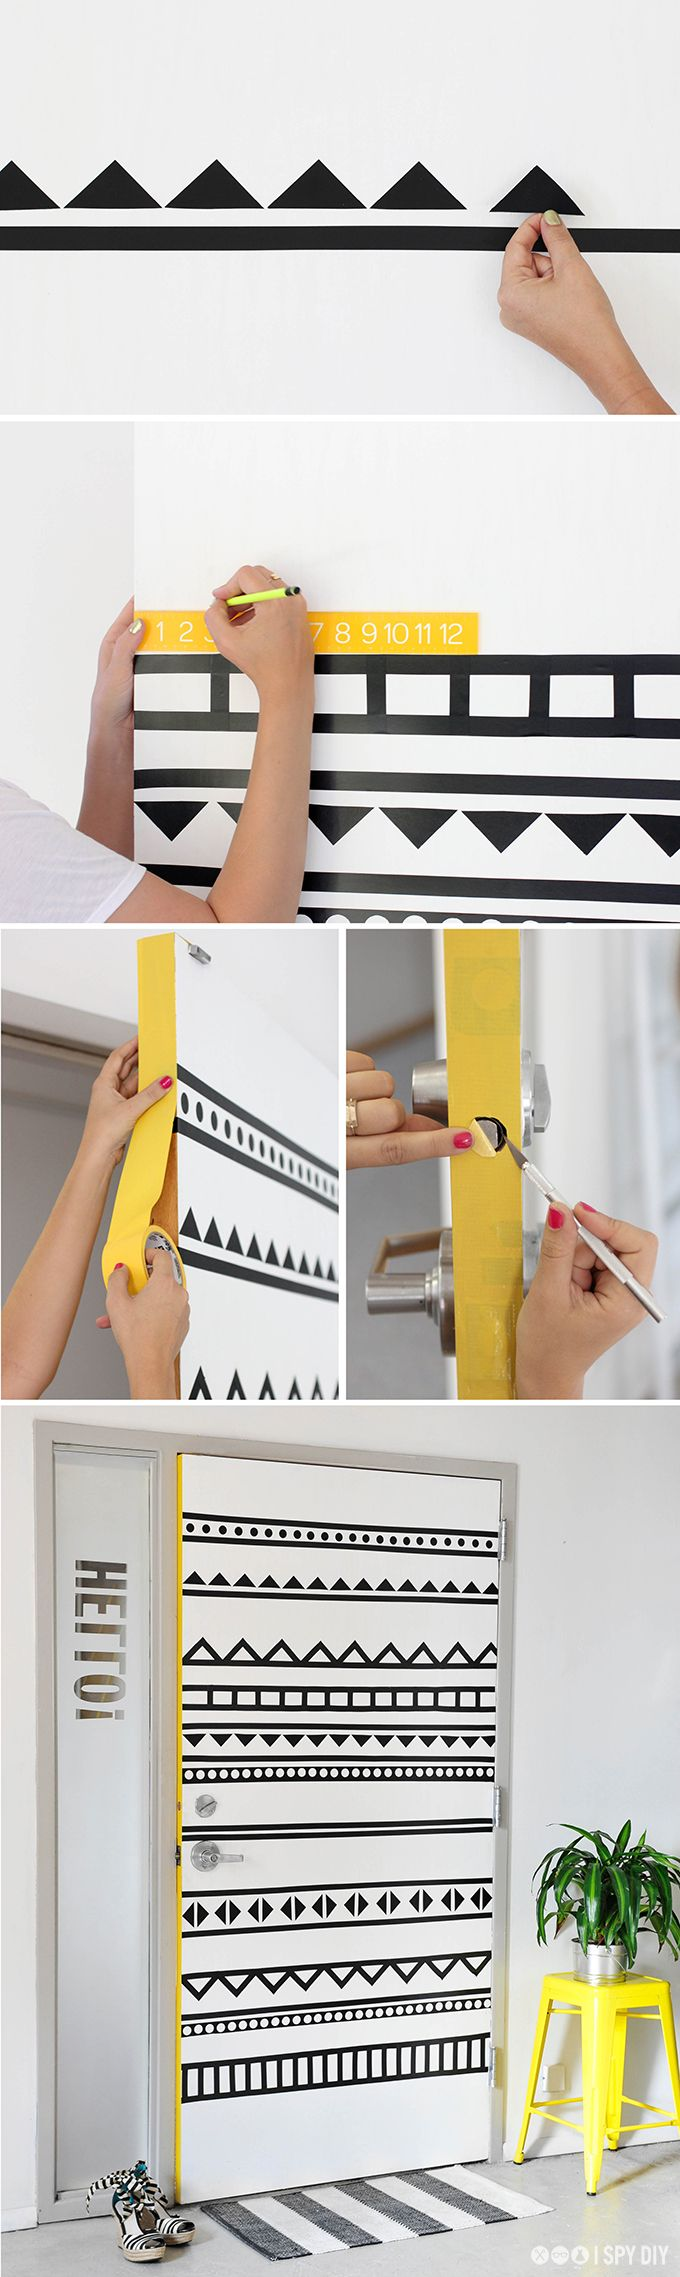 MY DIY | B&W Graphic Door | I SPY DIY